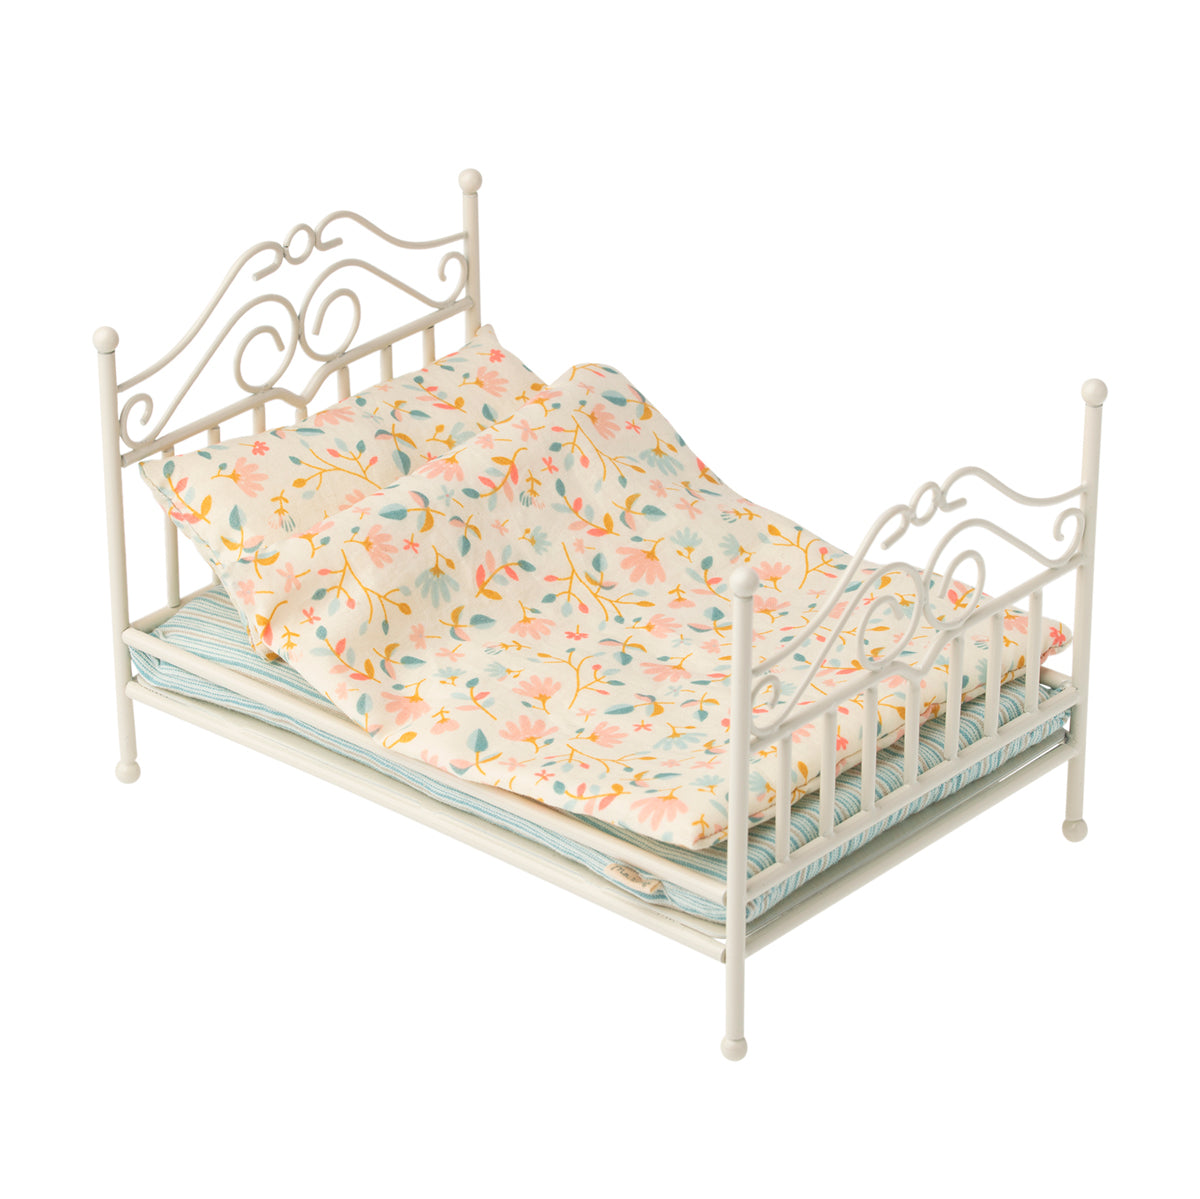 Vintage bed- micro - soft sand